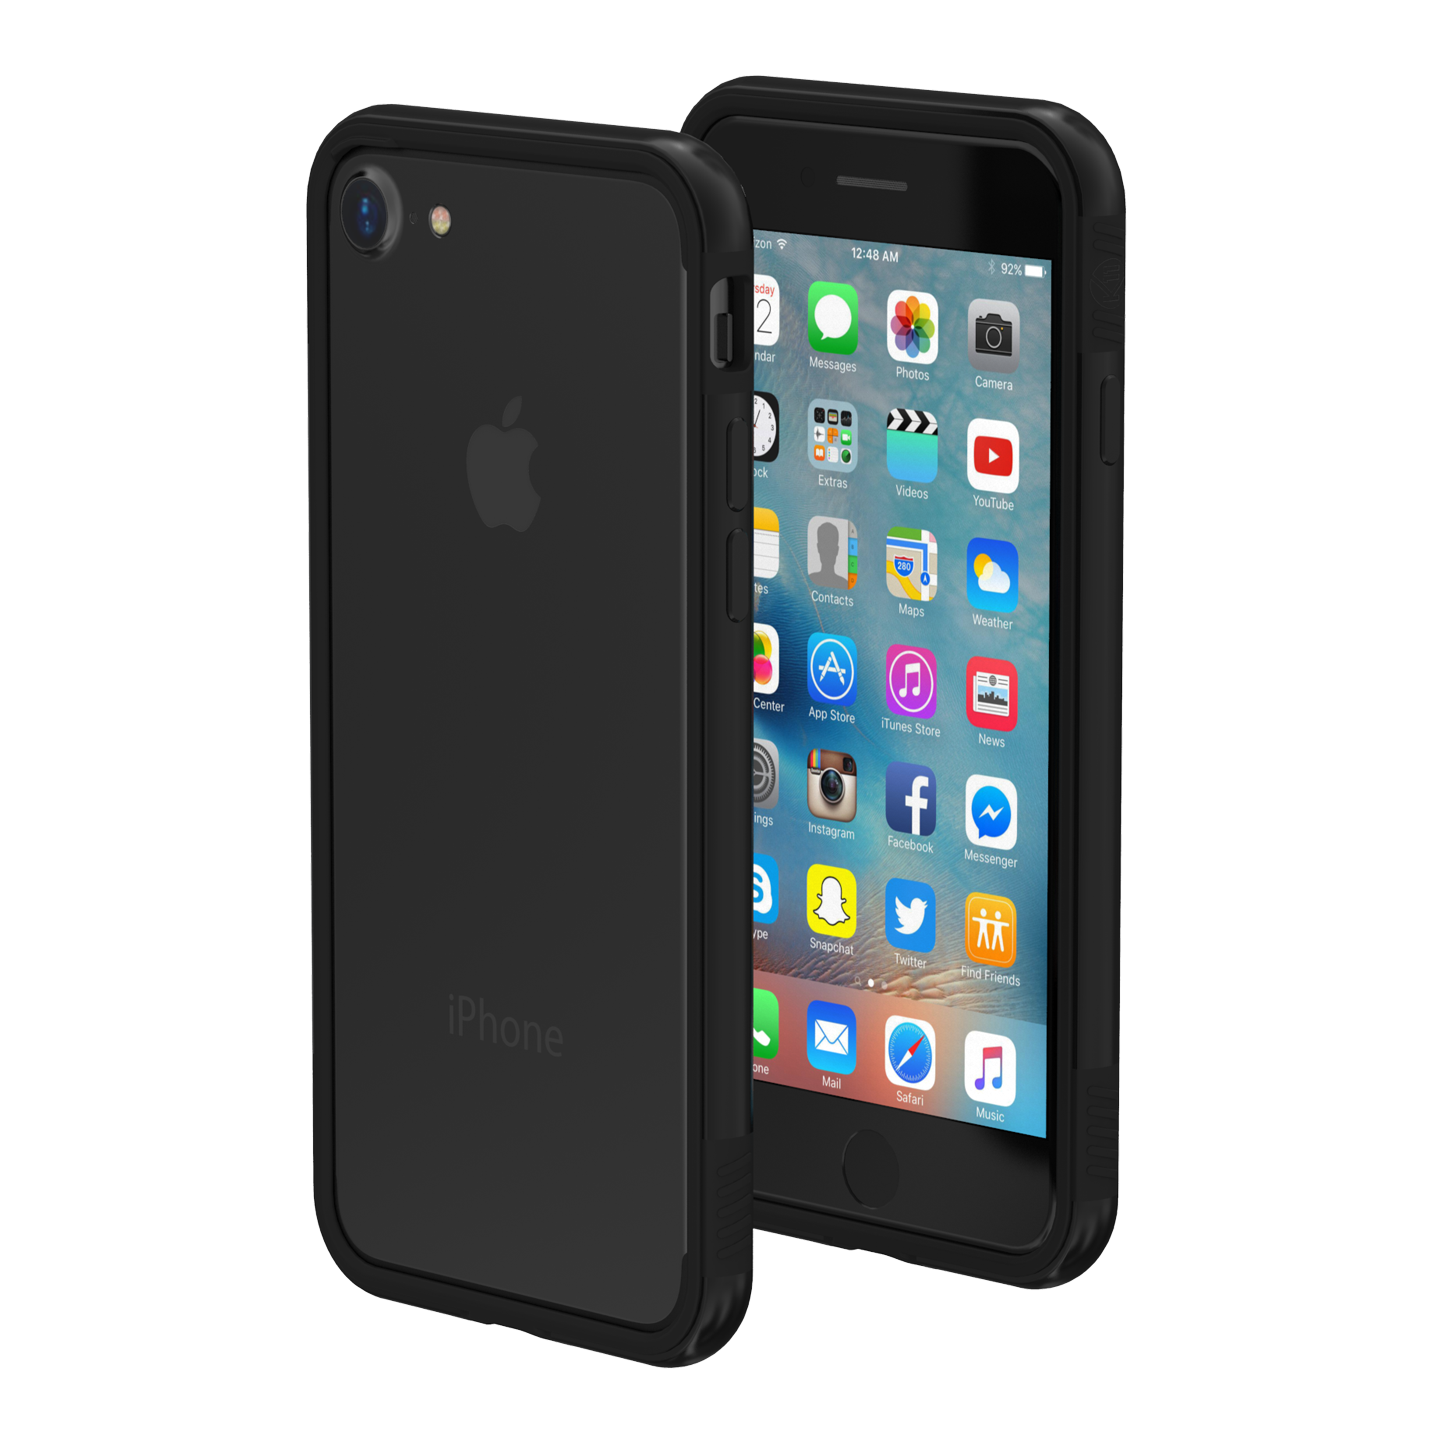 iphone 7 8 cases k11 bumper. Black Bedroom Furniture Sets. Home Design Ideas